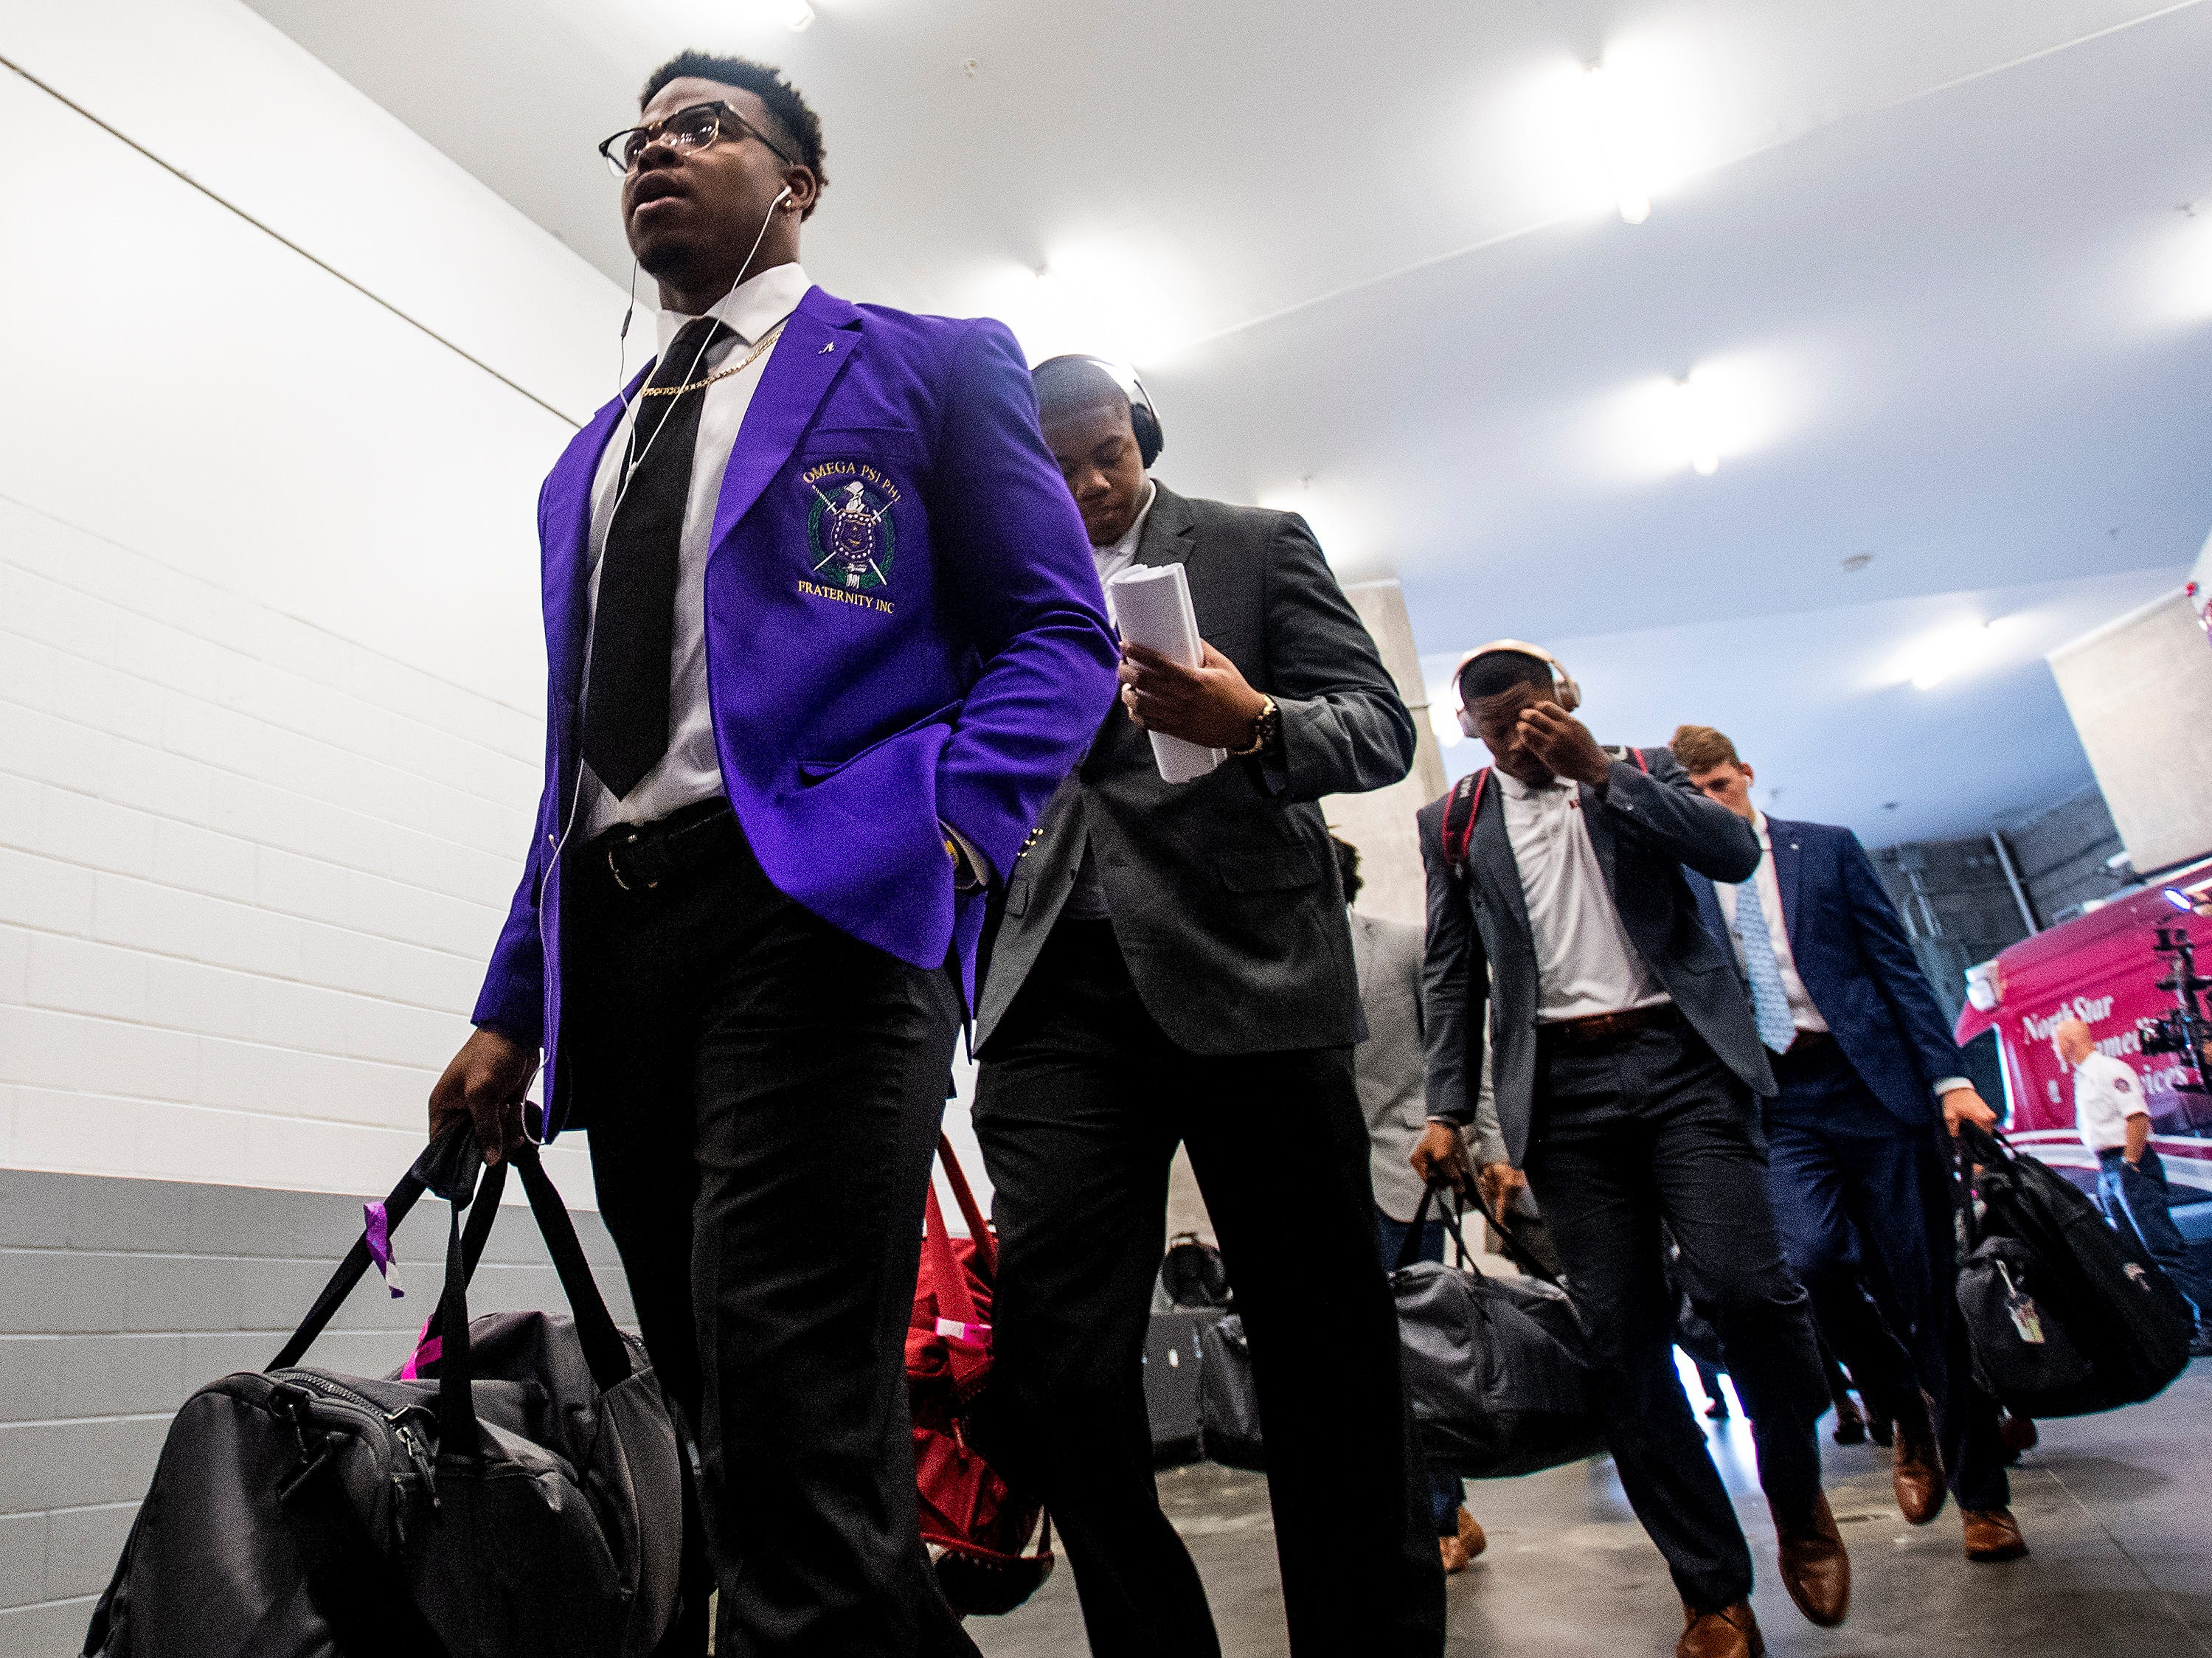 Alabama running back Damien Harris (34) arrives with the team before the SEC Championship Game at Mercedes Benz Stadium in Atlanta, Ga., on Saturday December 1, 2018.